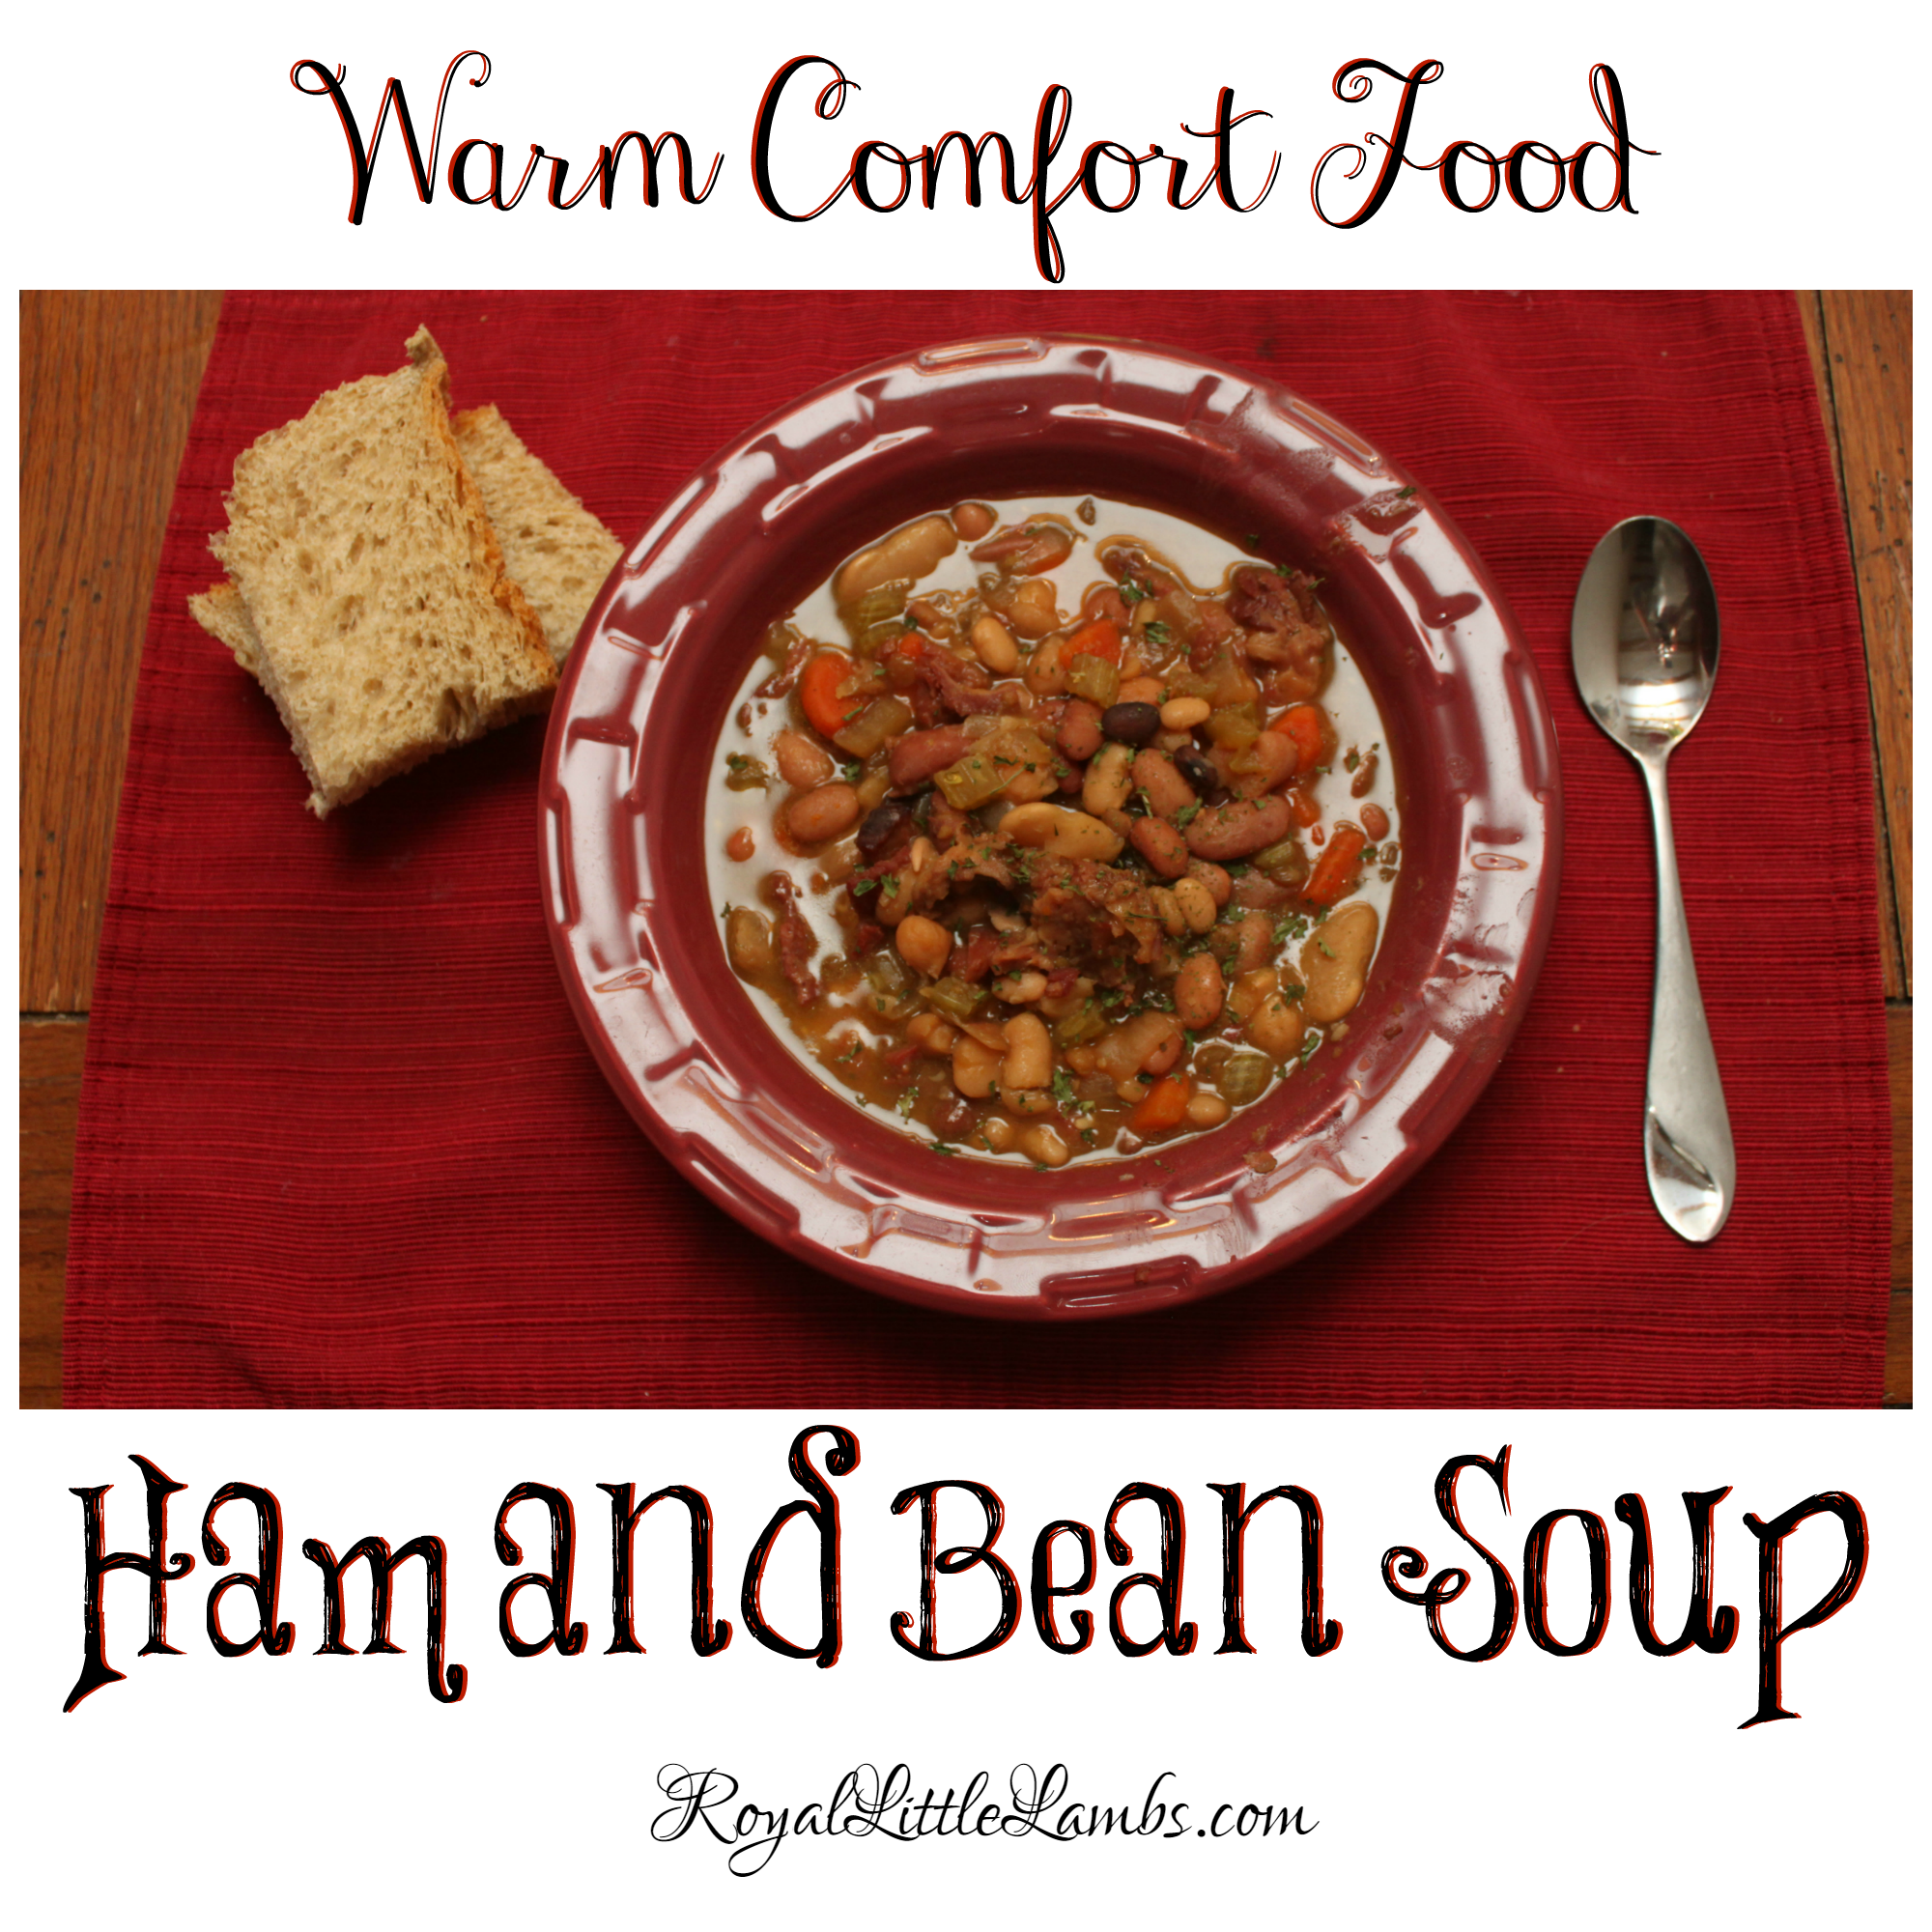 Warm Comfort Food - Ham and Bean Soup